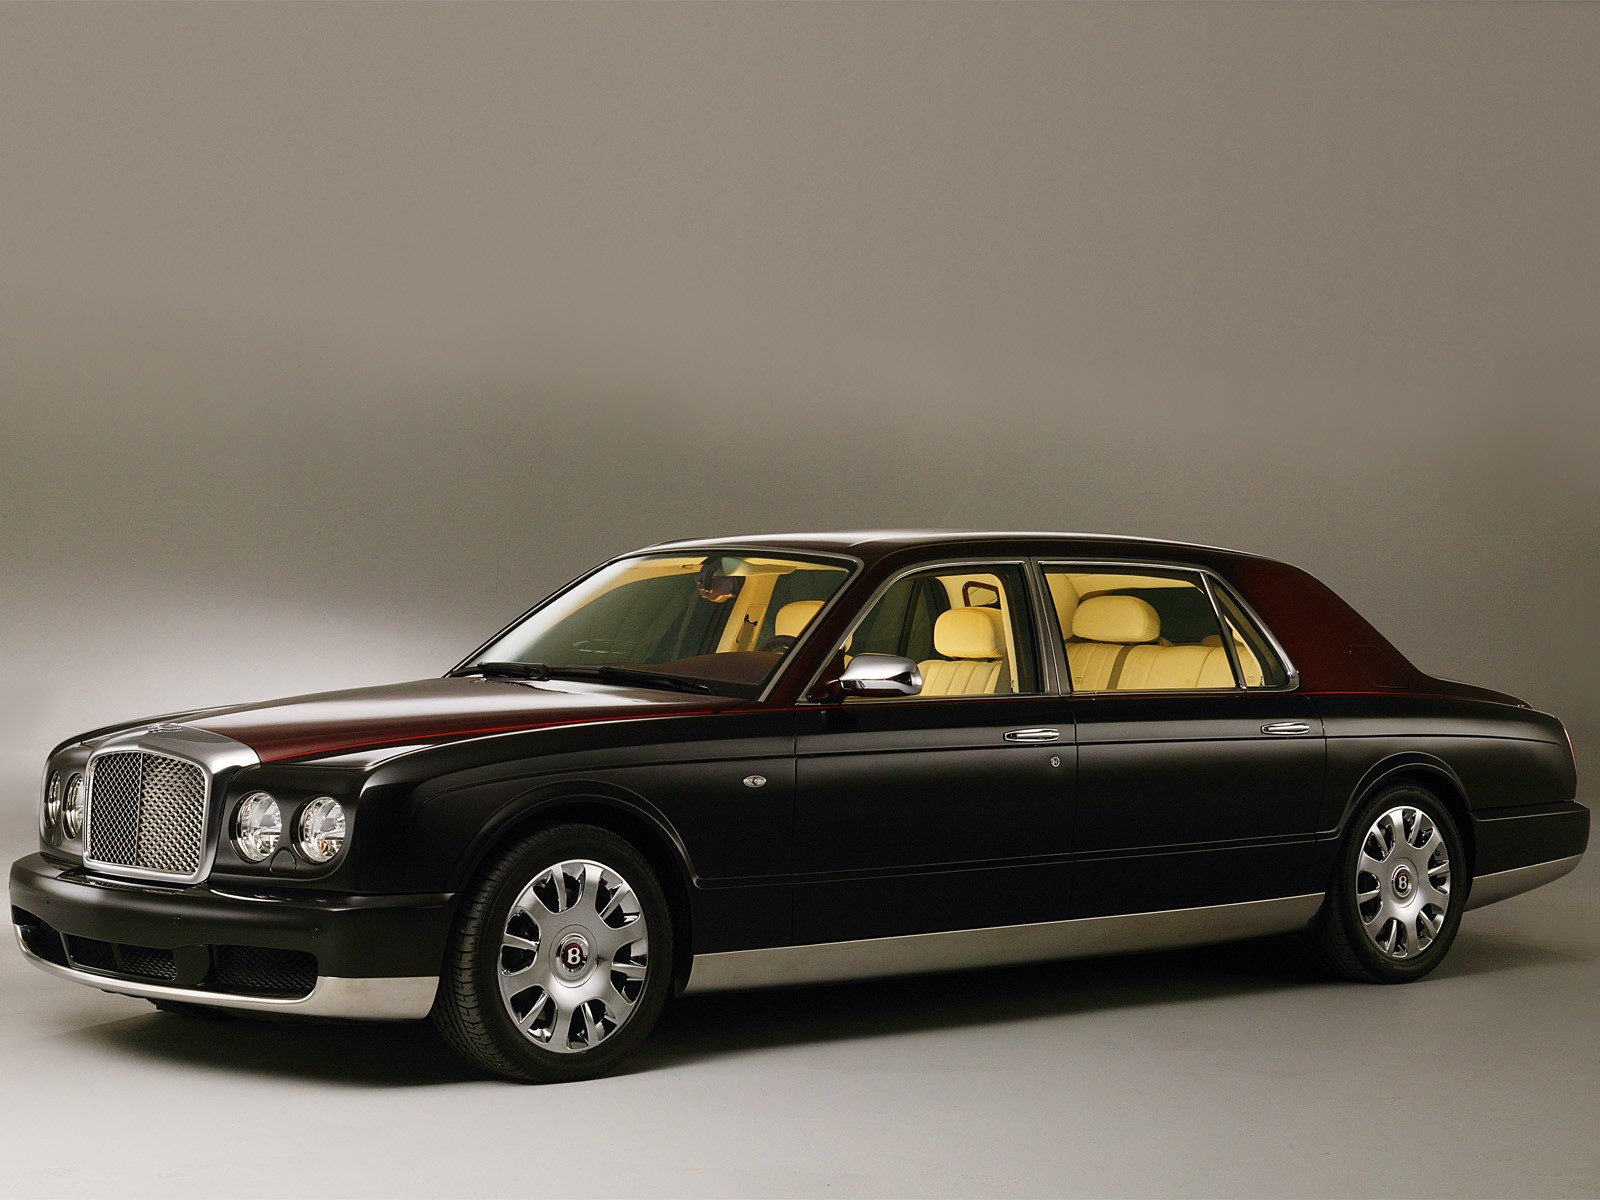 Car Apr Calculator >> BENTLEY Arnage Limousine specs - 2005, 2006, 2007, 2008, 2009 - autoevolution